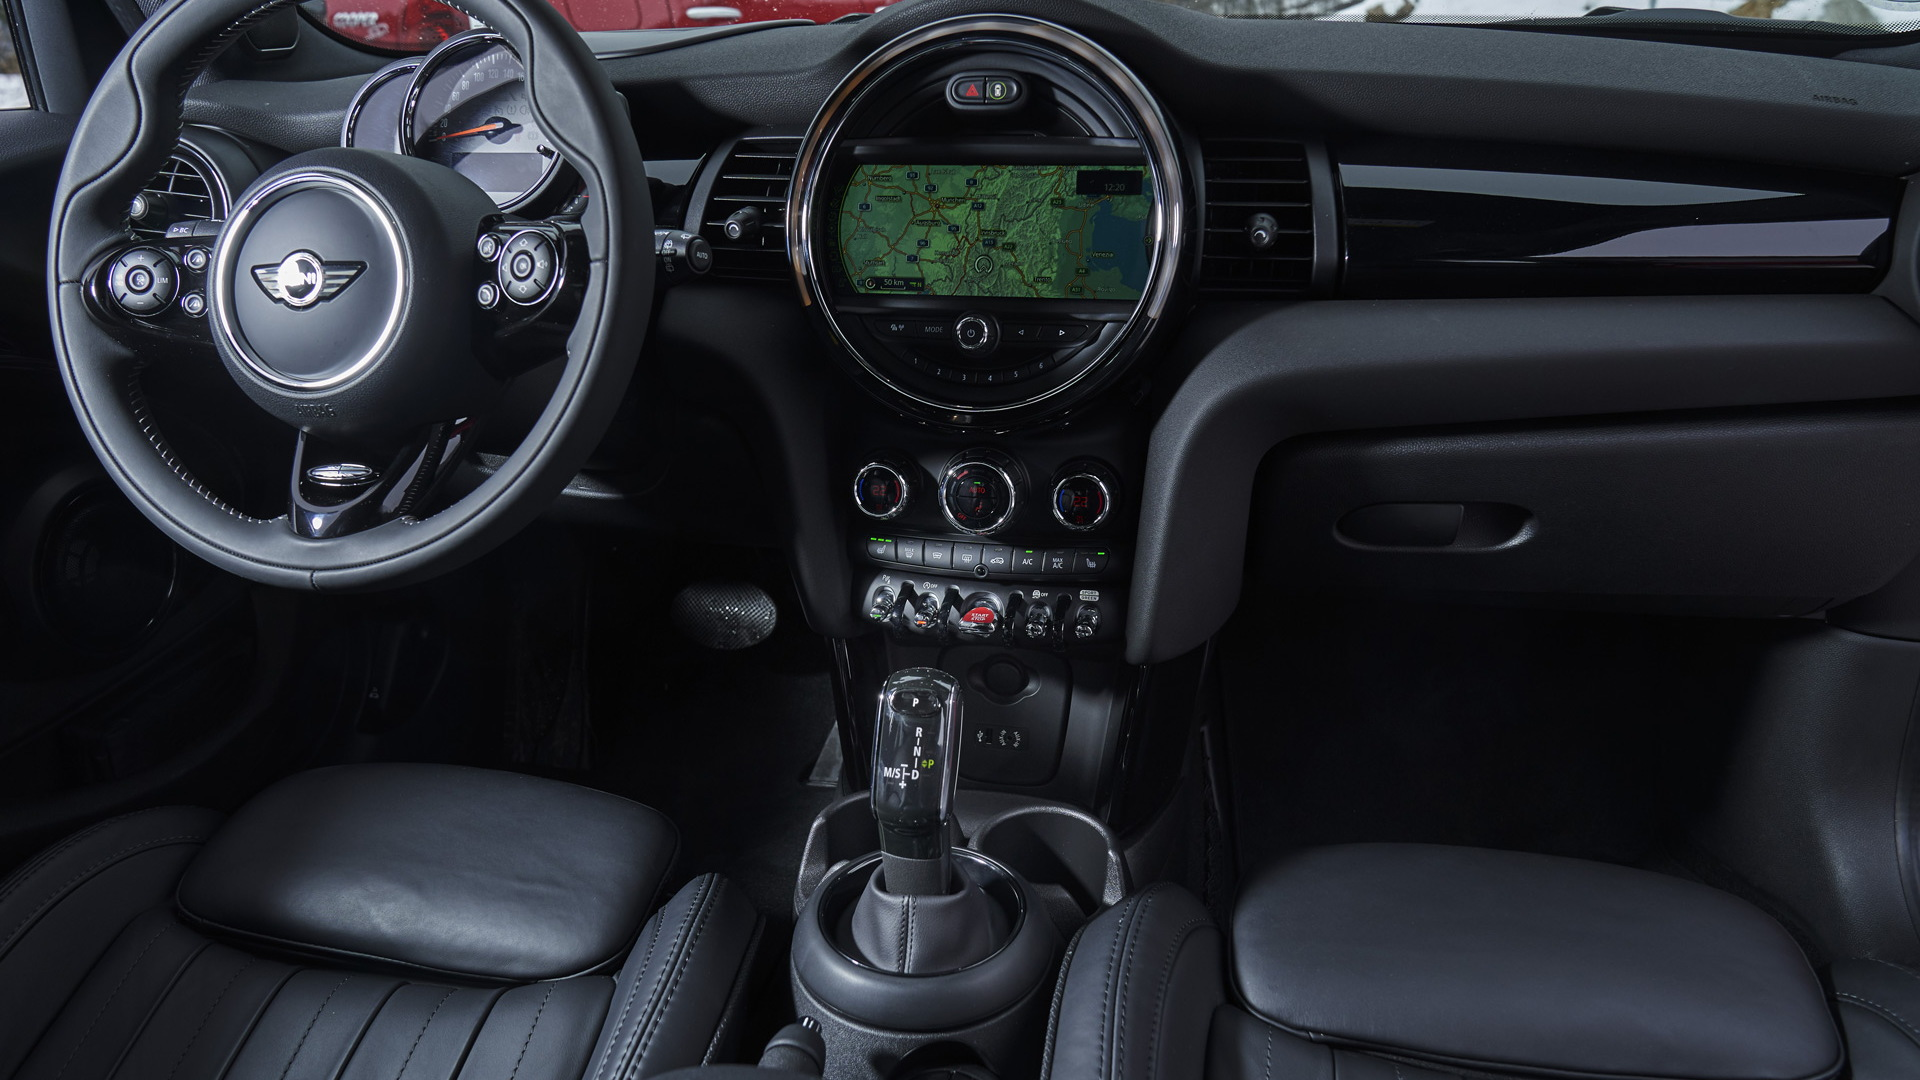 Mini's 7-speed dual-clutch transmission